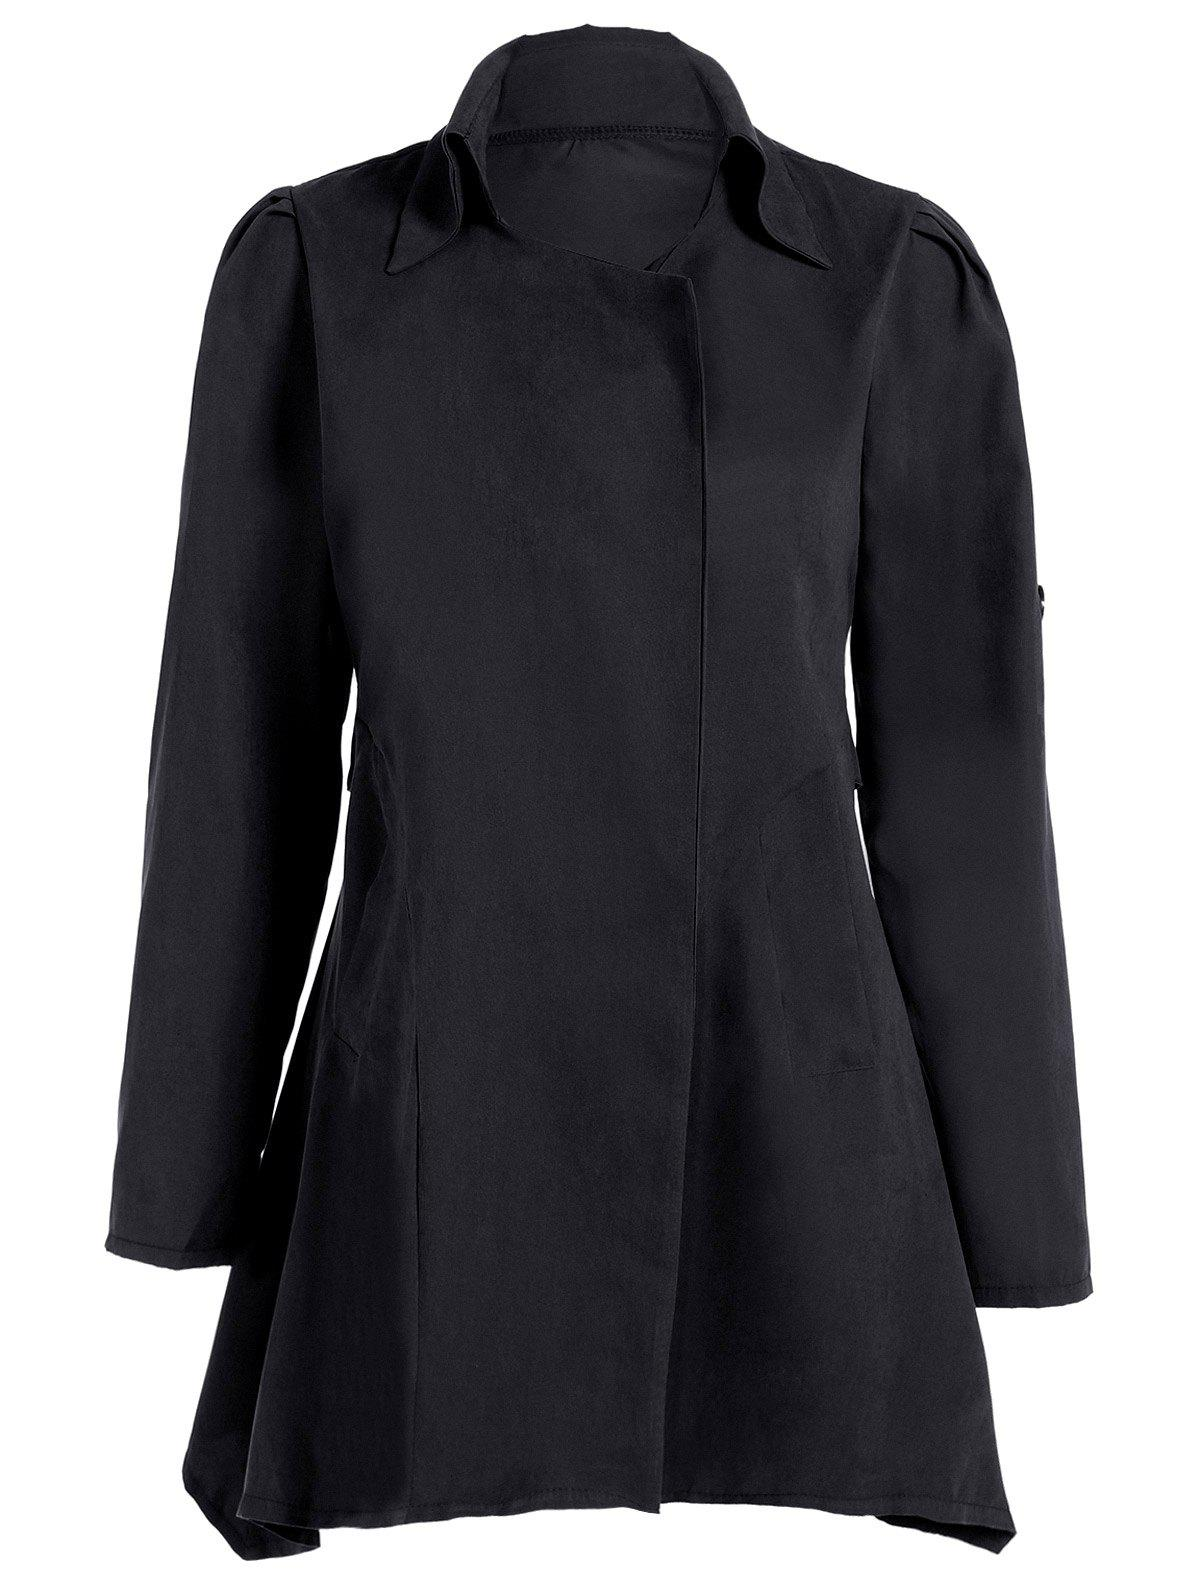 Asymmetric Duster CoatWOMEN<br><br>Size: 3XL; Color: BLACK; Clothes Type: Others; Material: Polyester; Type: Wide-waisted; Shirt Length: Long; Sleeve Length: Full; Collar: Turn-down Collar; Pattern Type: Solid; Embellishment: Vintage; Style: Fashion; Season: Fall,Spring,Winter; Weight: 0.246kg; Package Contents: 1 x Coat;